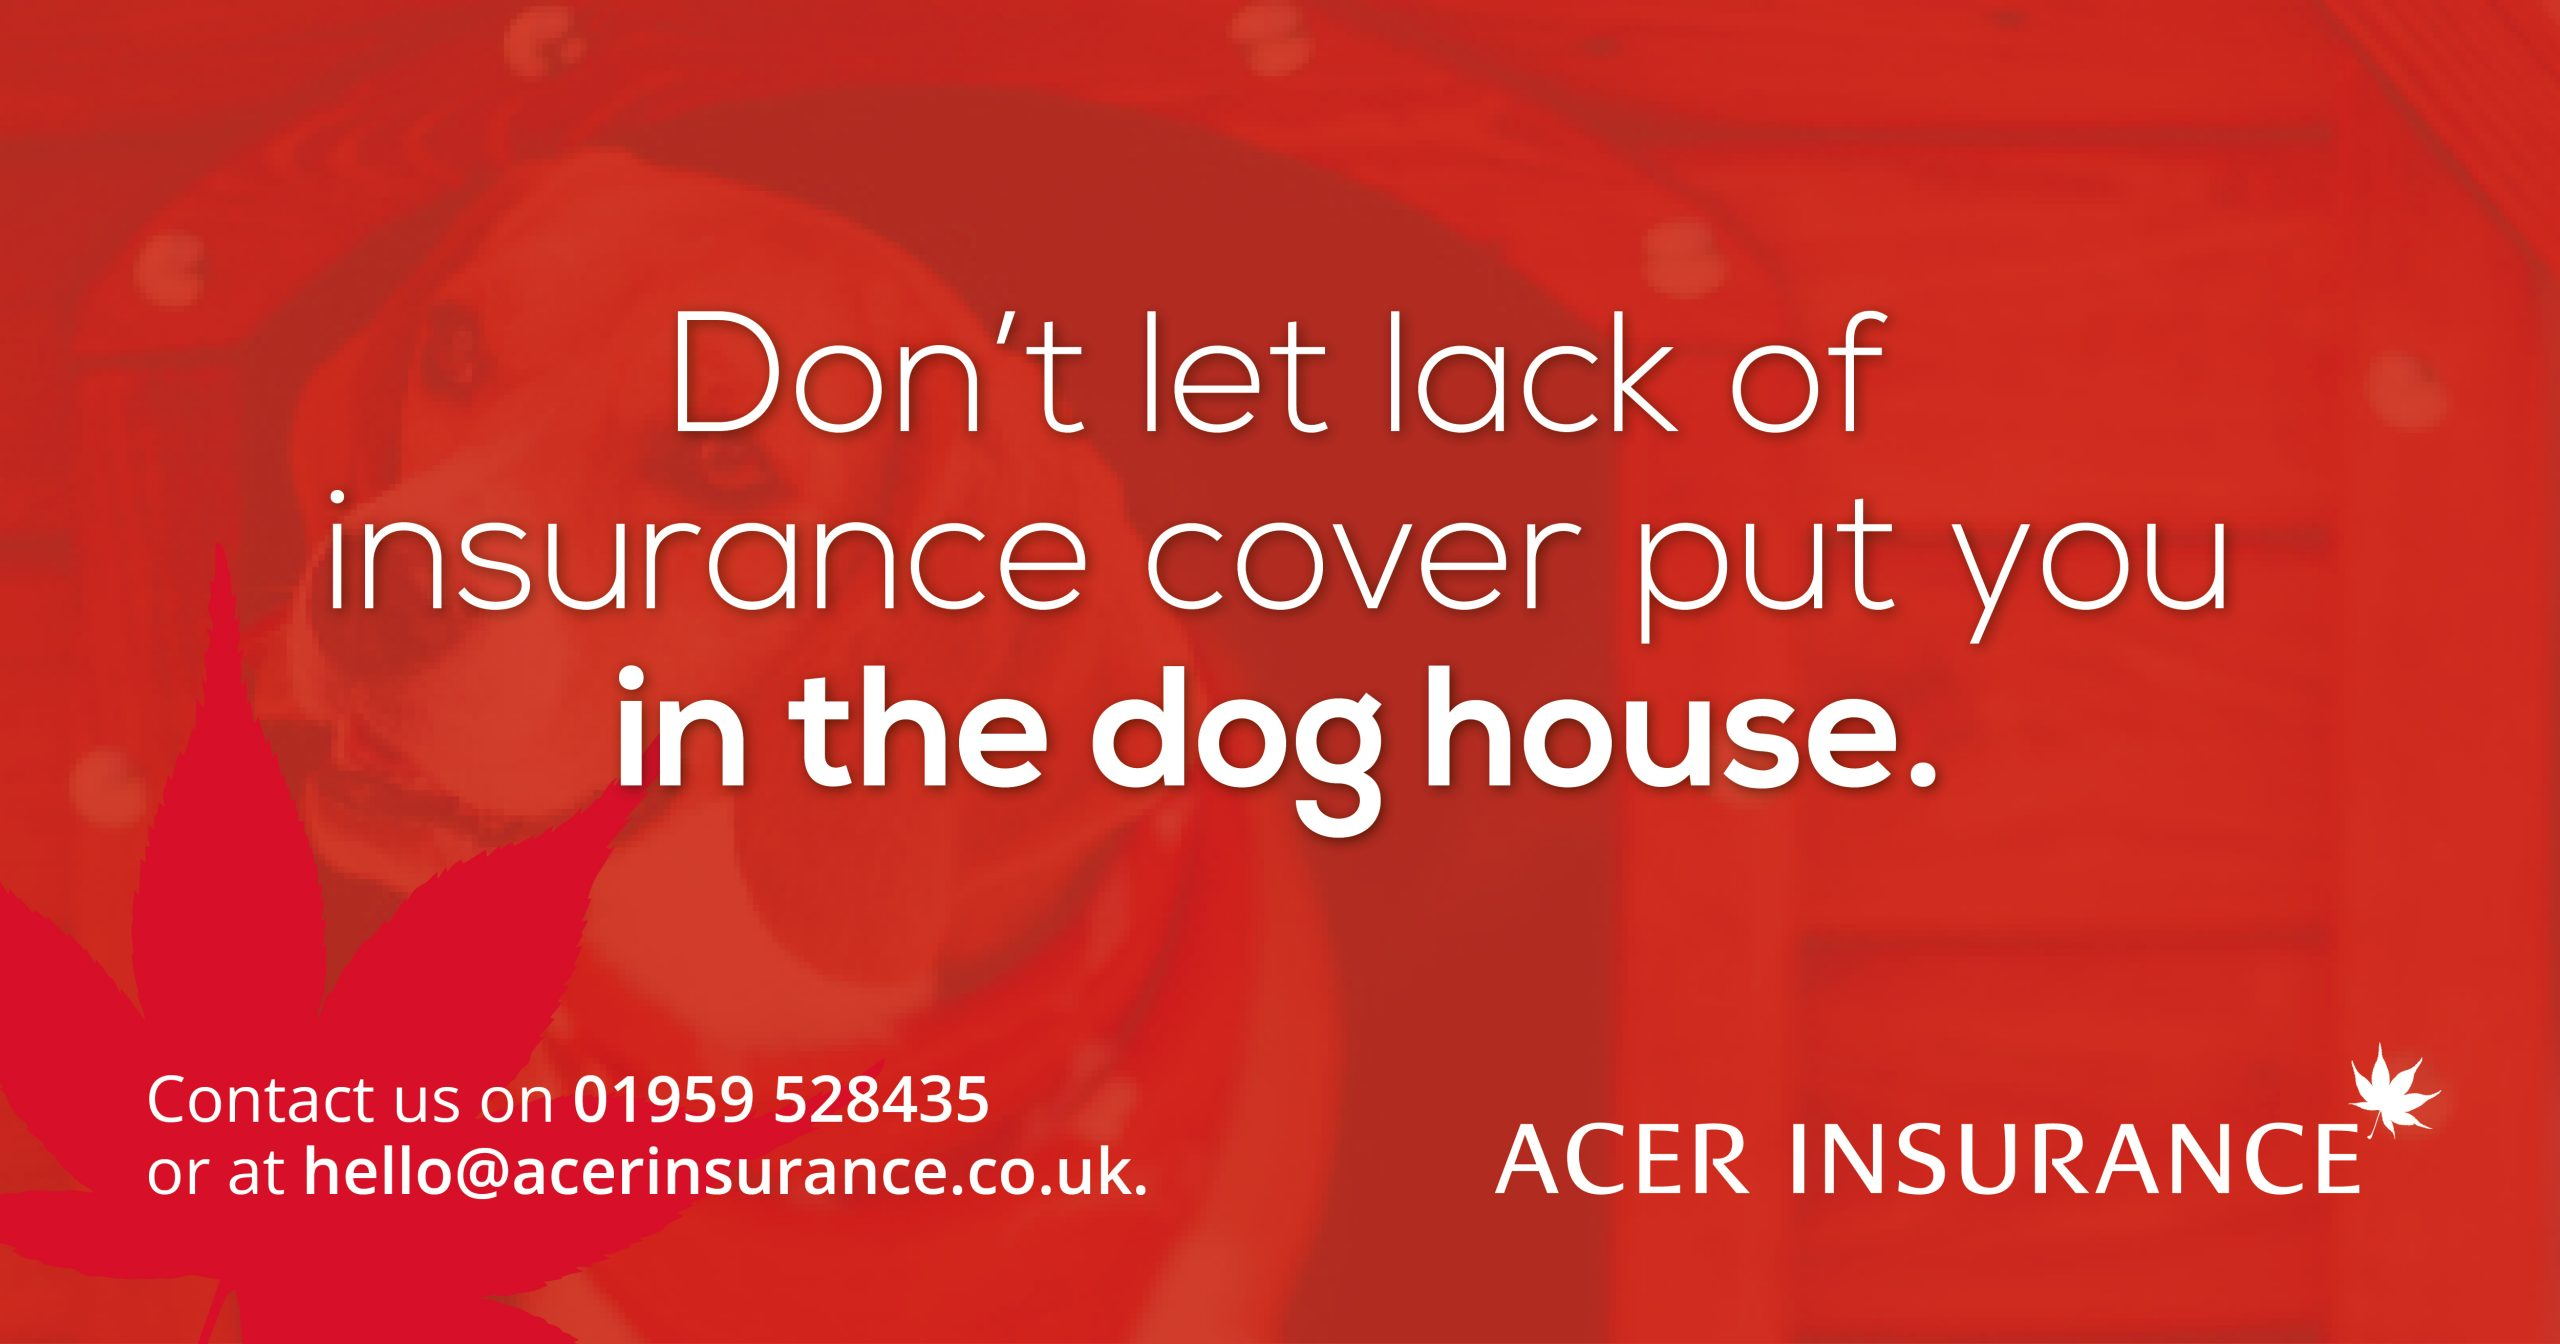 Don't let lack of flood insurance put you in the dog house